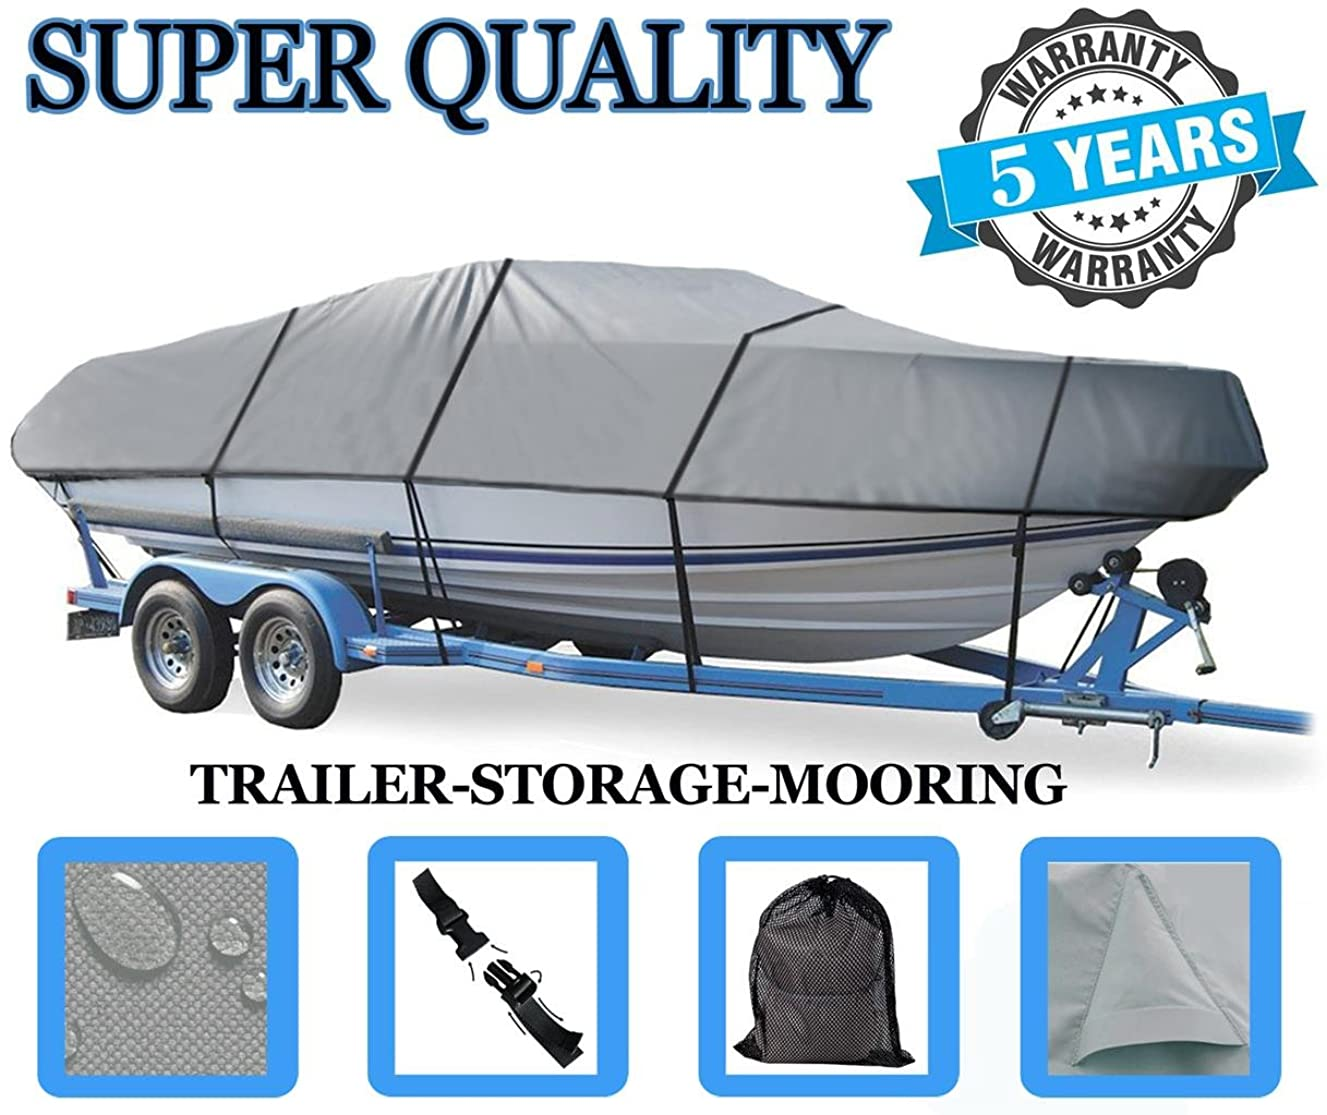 Boat Cover for Mariah R19.9 W/EXTD SWPF 2008-2011 Heavy-Duty